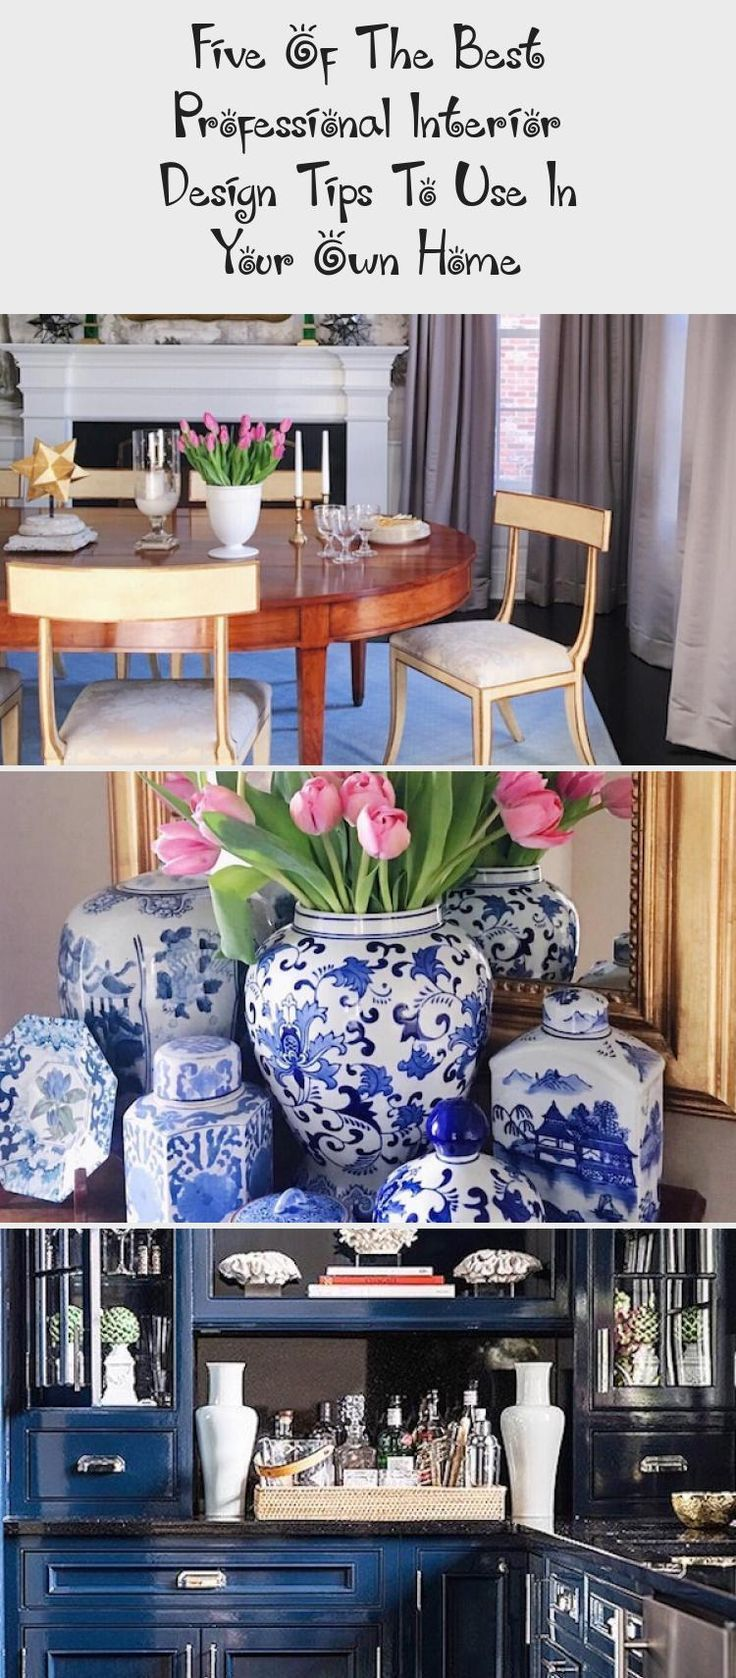 #interiordesignClassic  #interiordesignStyles  #interiordesignWhite  #interiordesignLighting  #interiordesignFurniture #Design #Tips  Interior Design Tips To Use In Your Own Home white kitchen with blue and white decor accent accessories